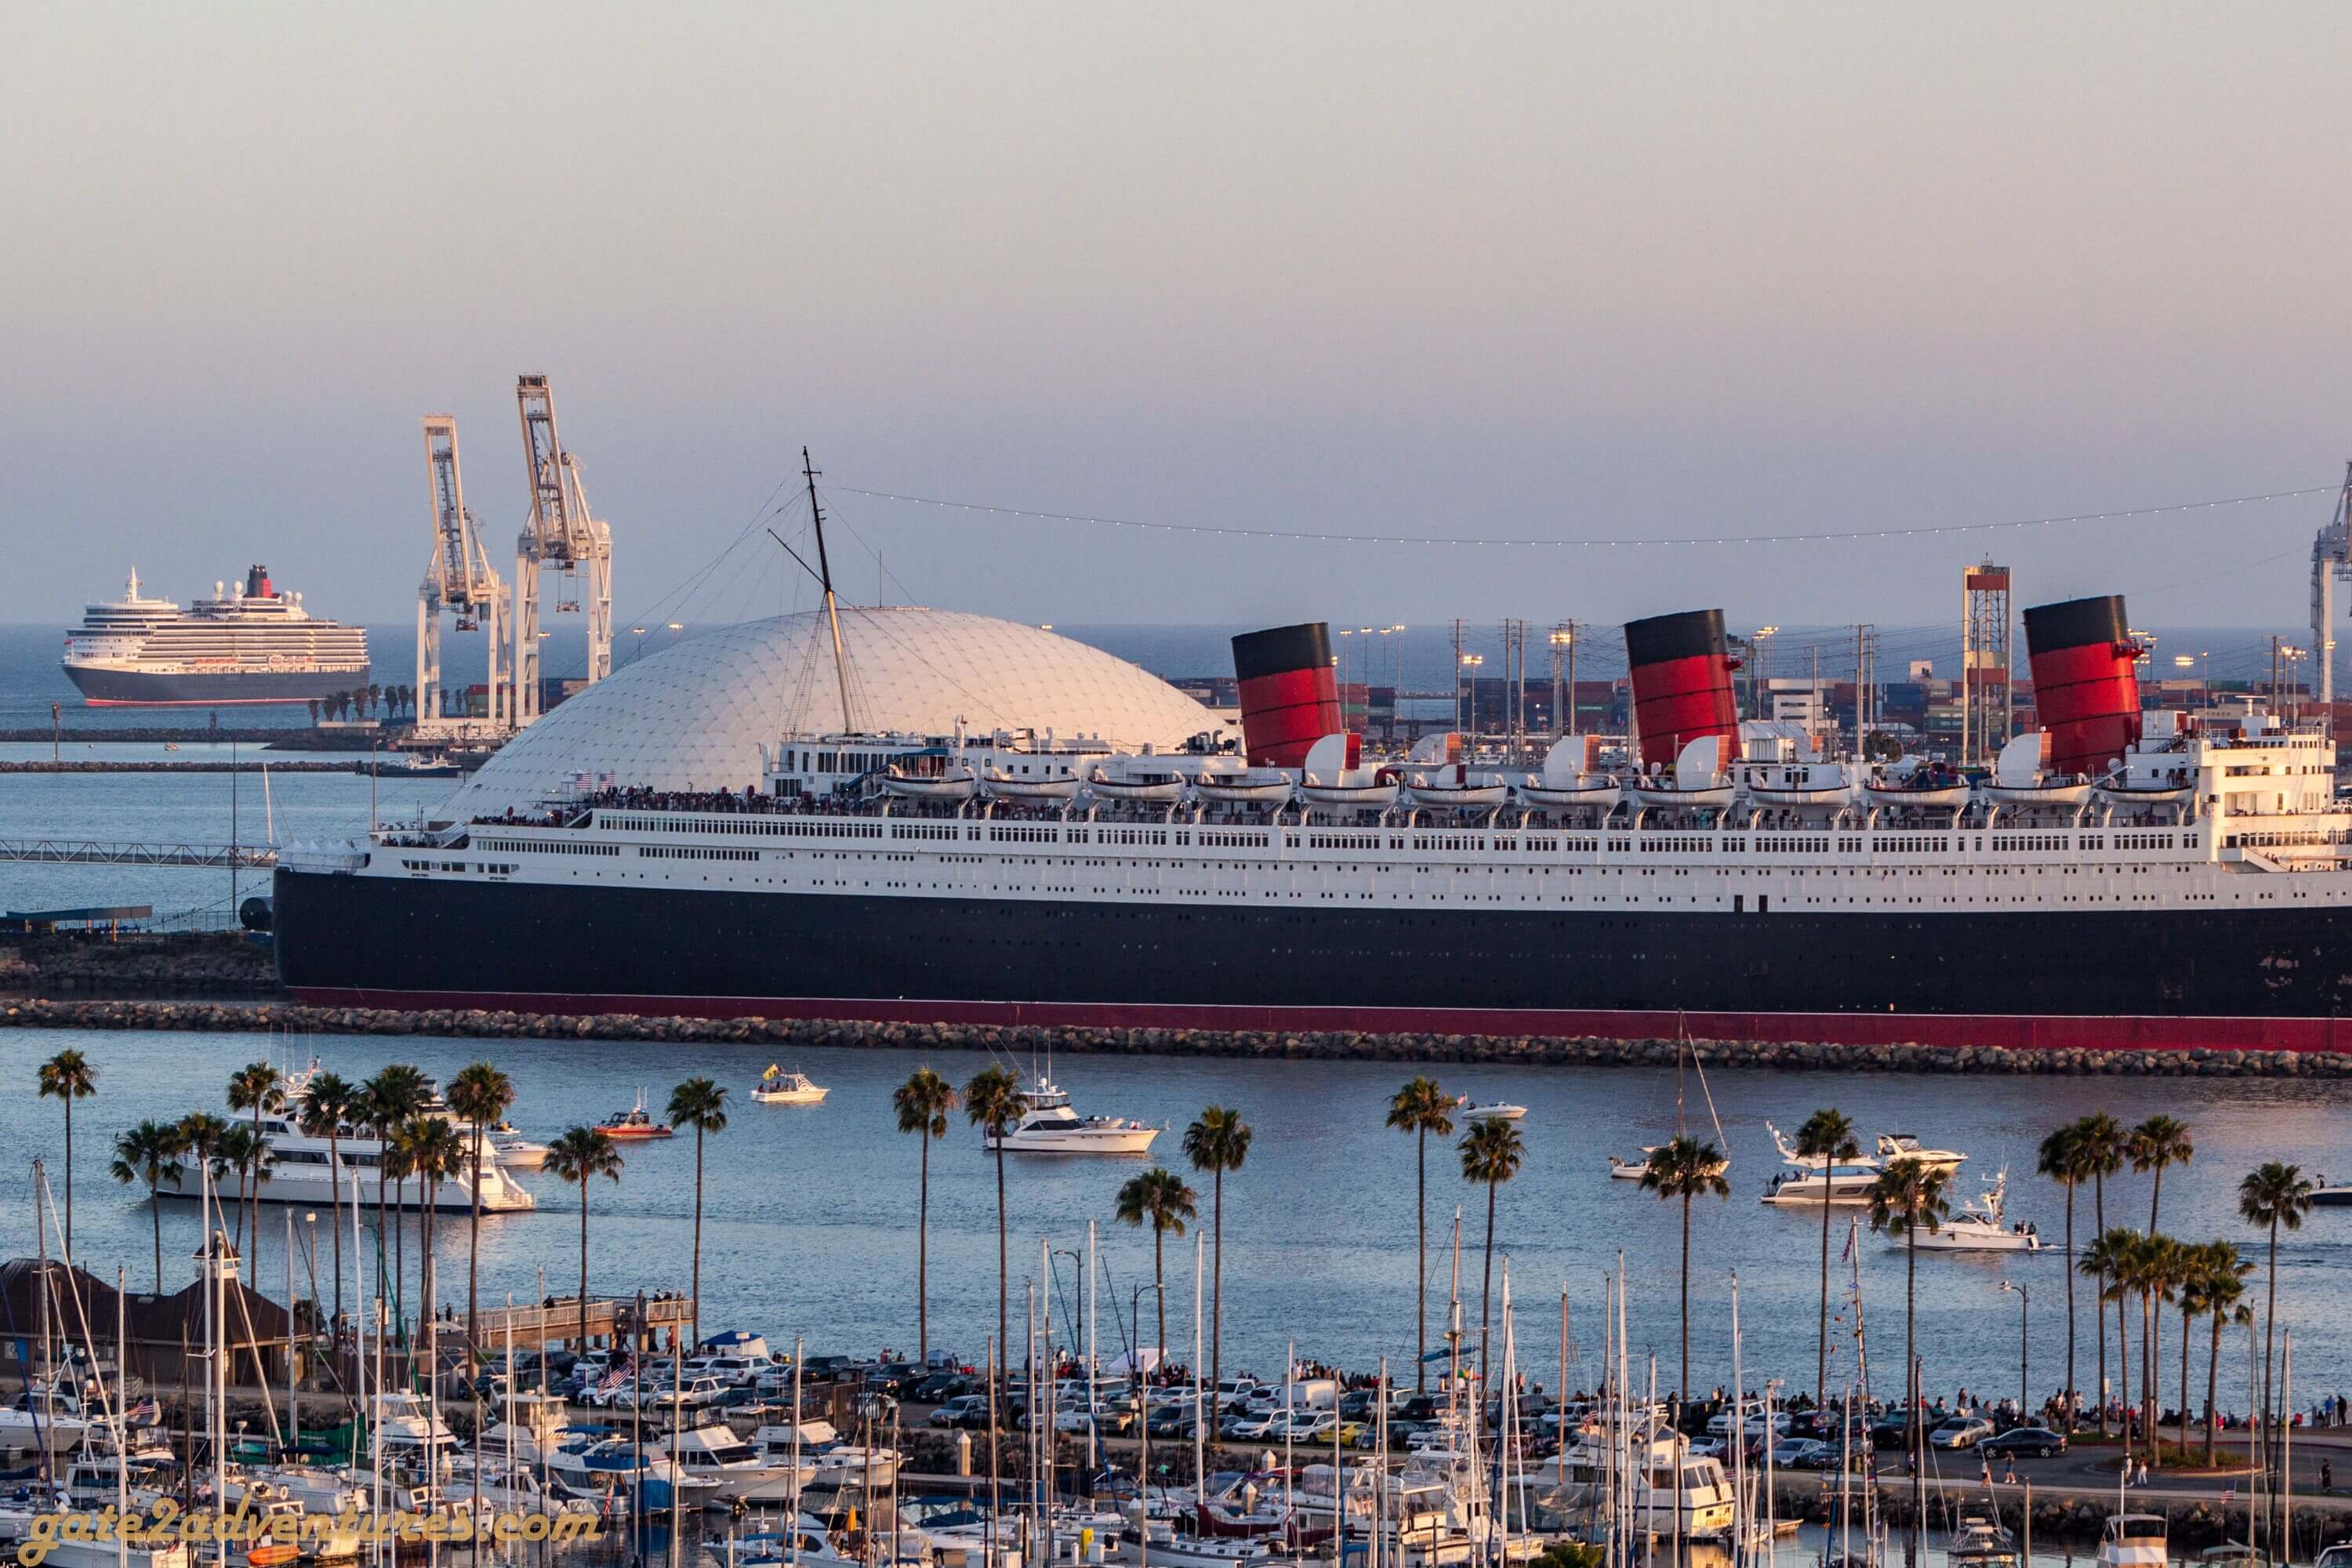 Queen Elizabeth approaching Queen Mary